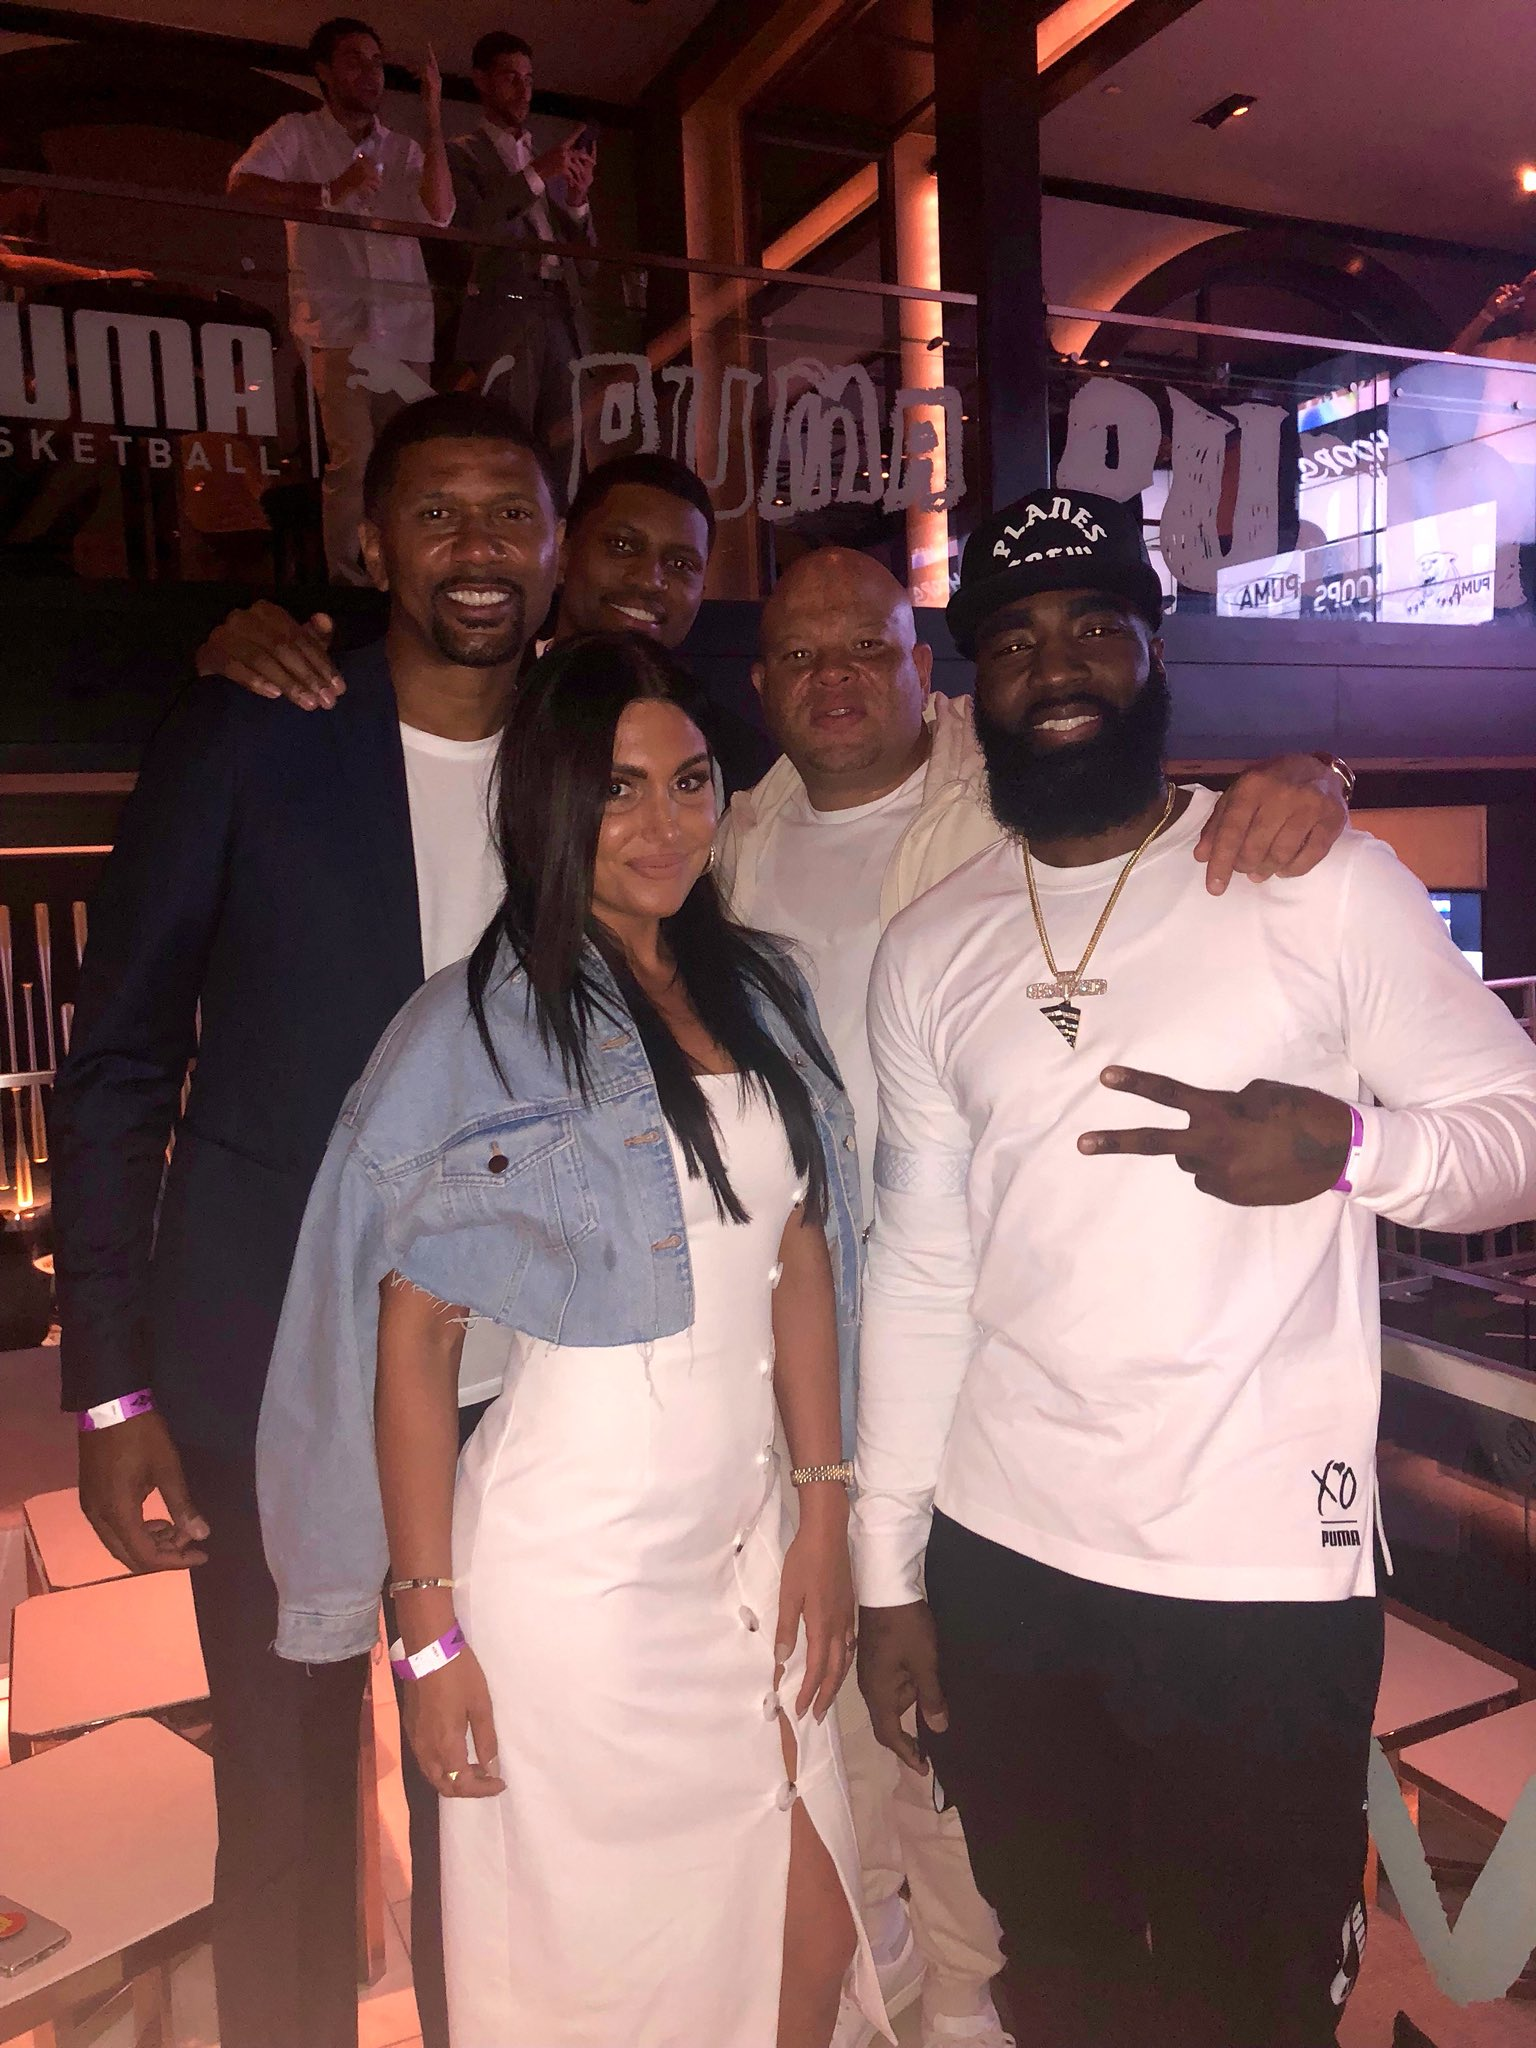 Molly Qerim Rose On Twitter Good Times At The PUMA